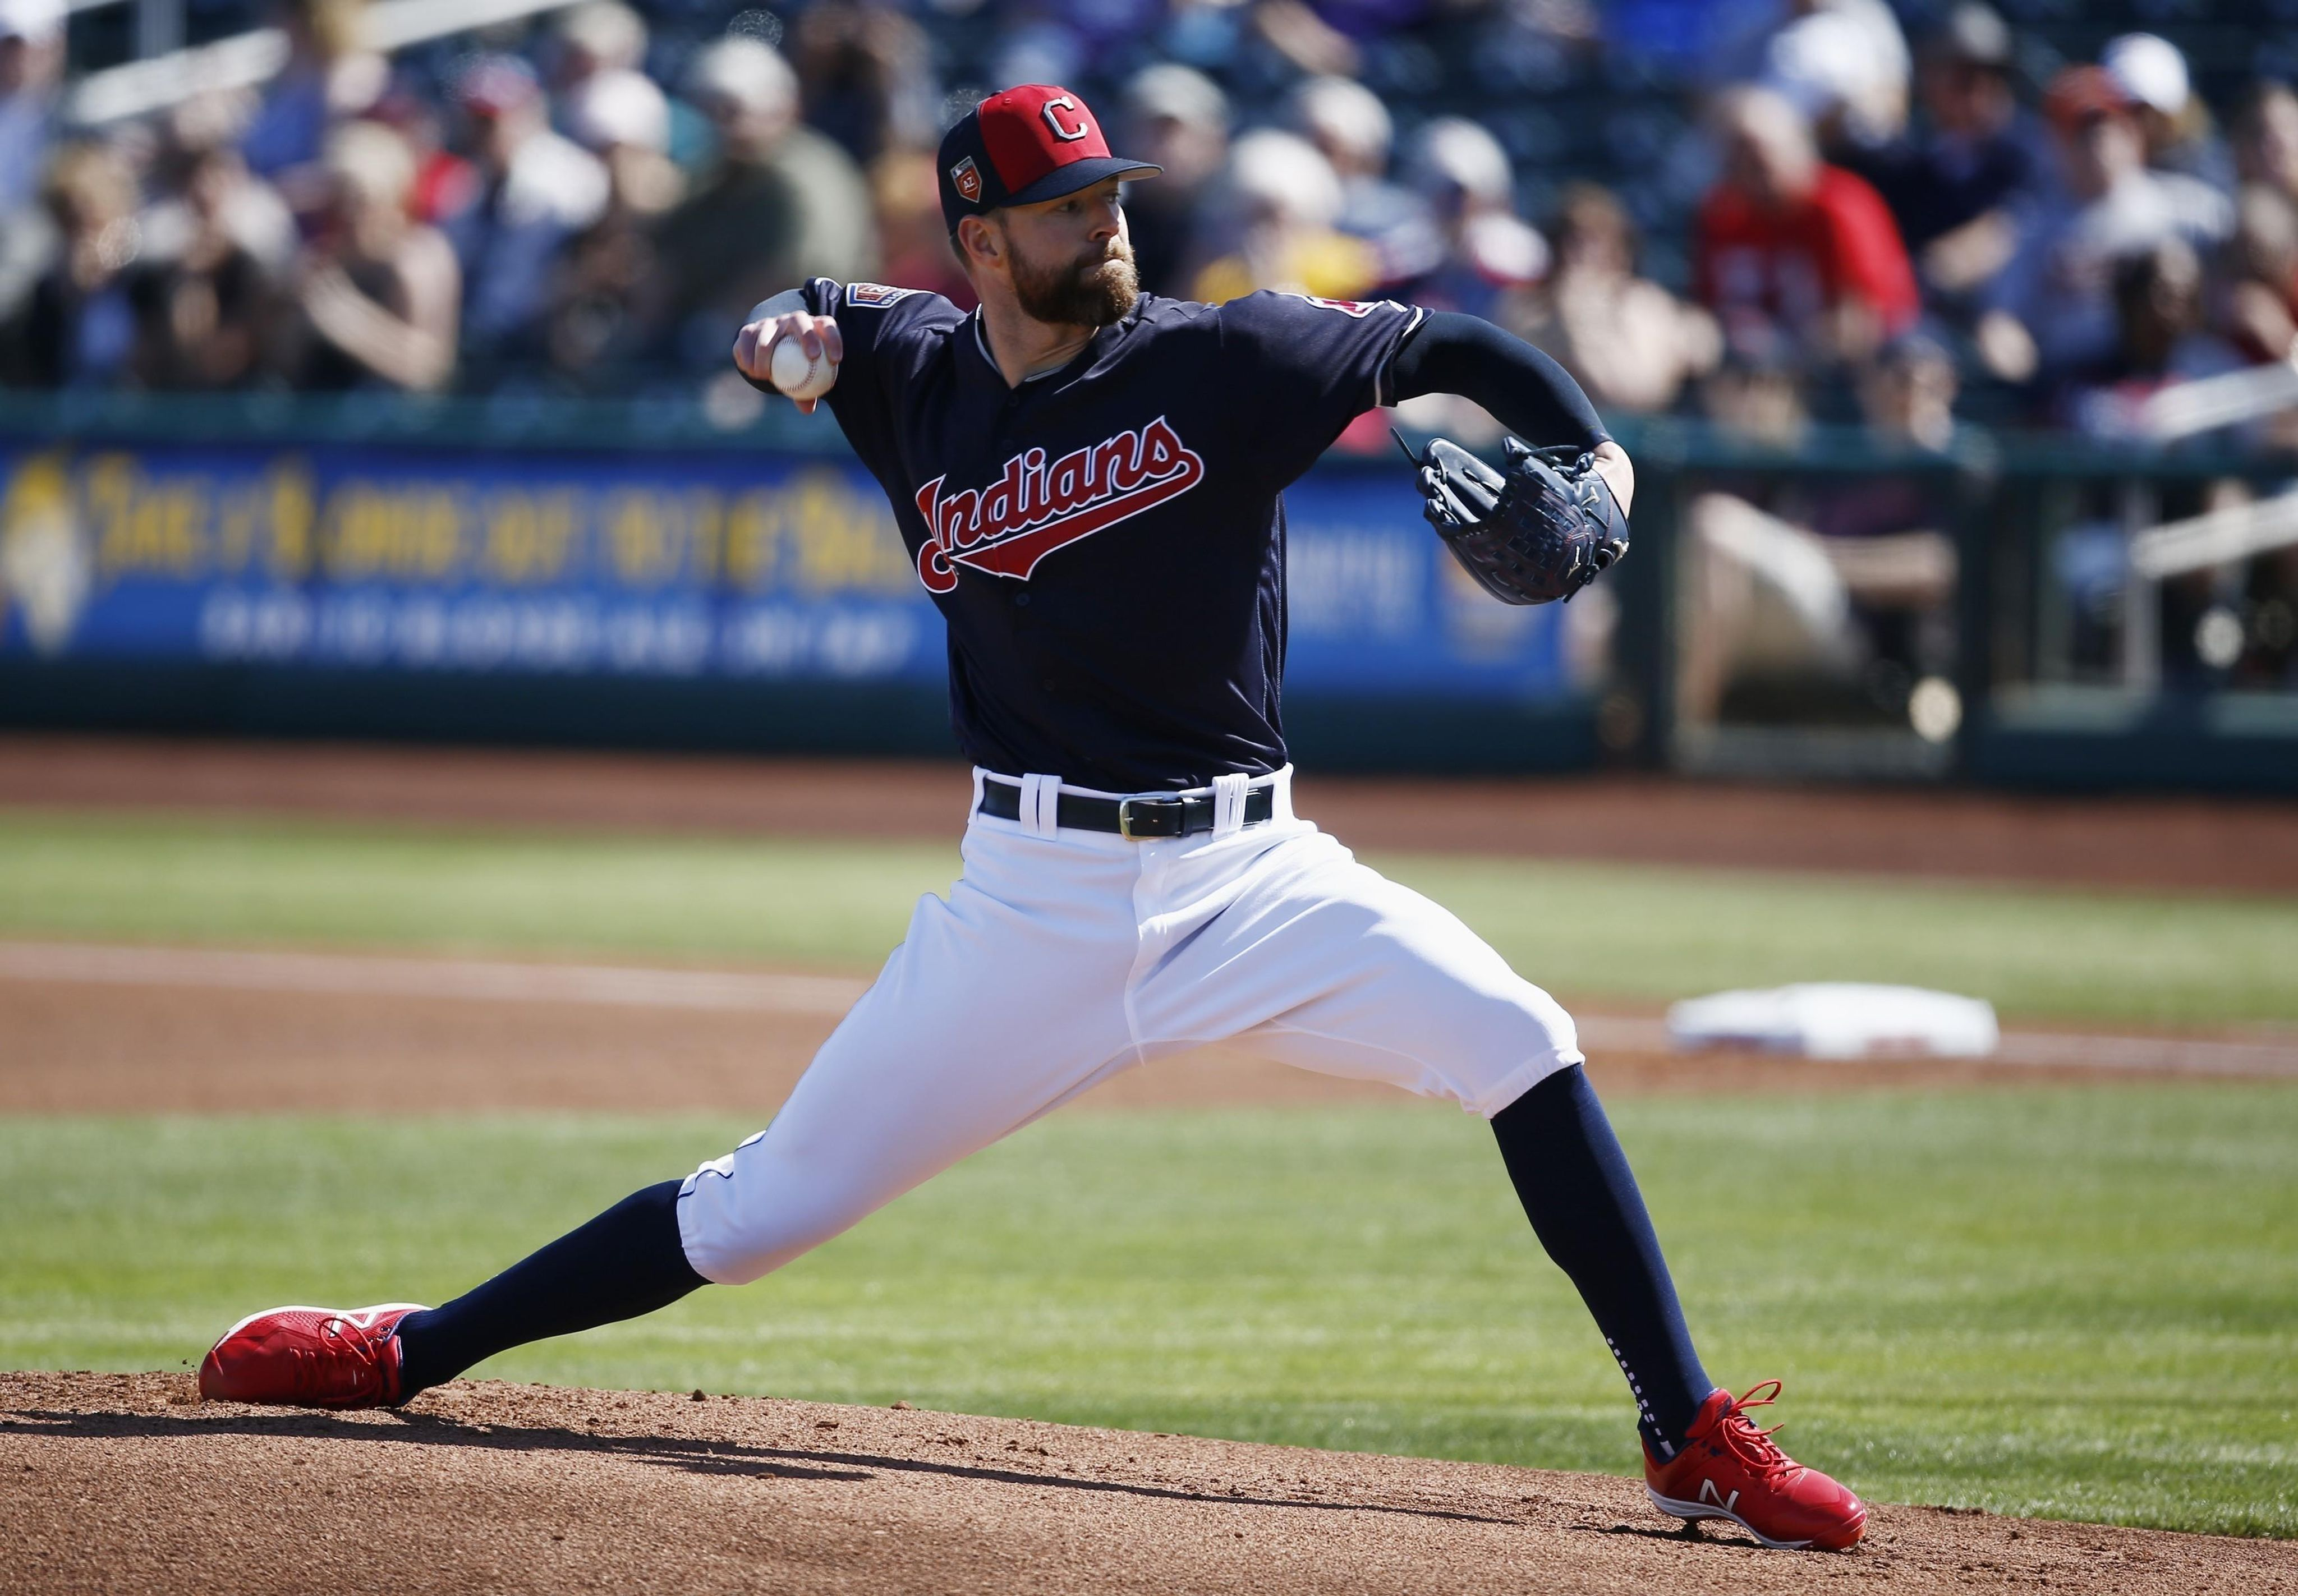 Indians_preview_baseball_94142_s4096x2845